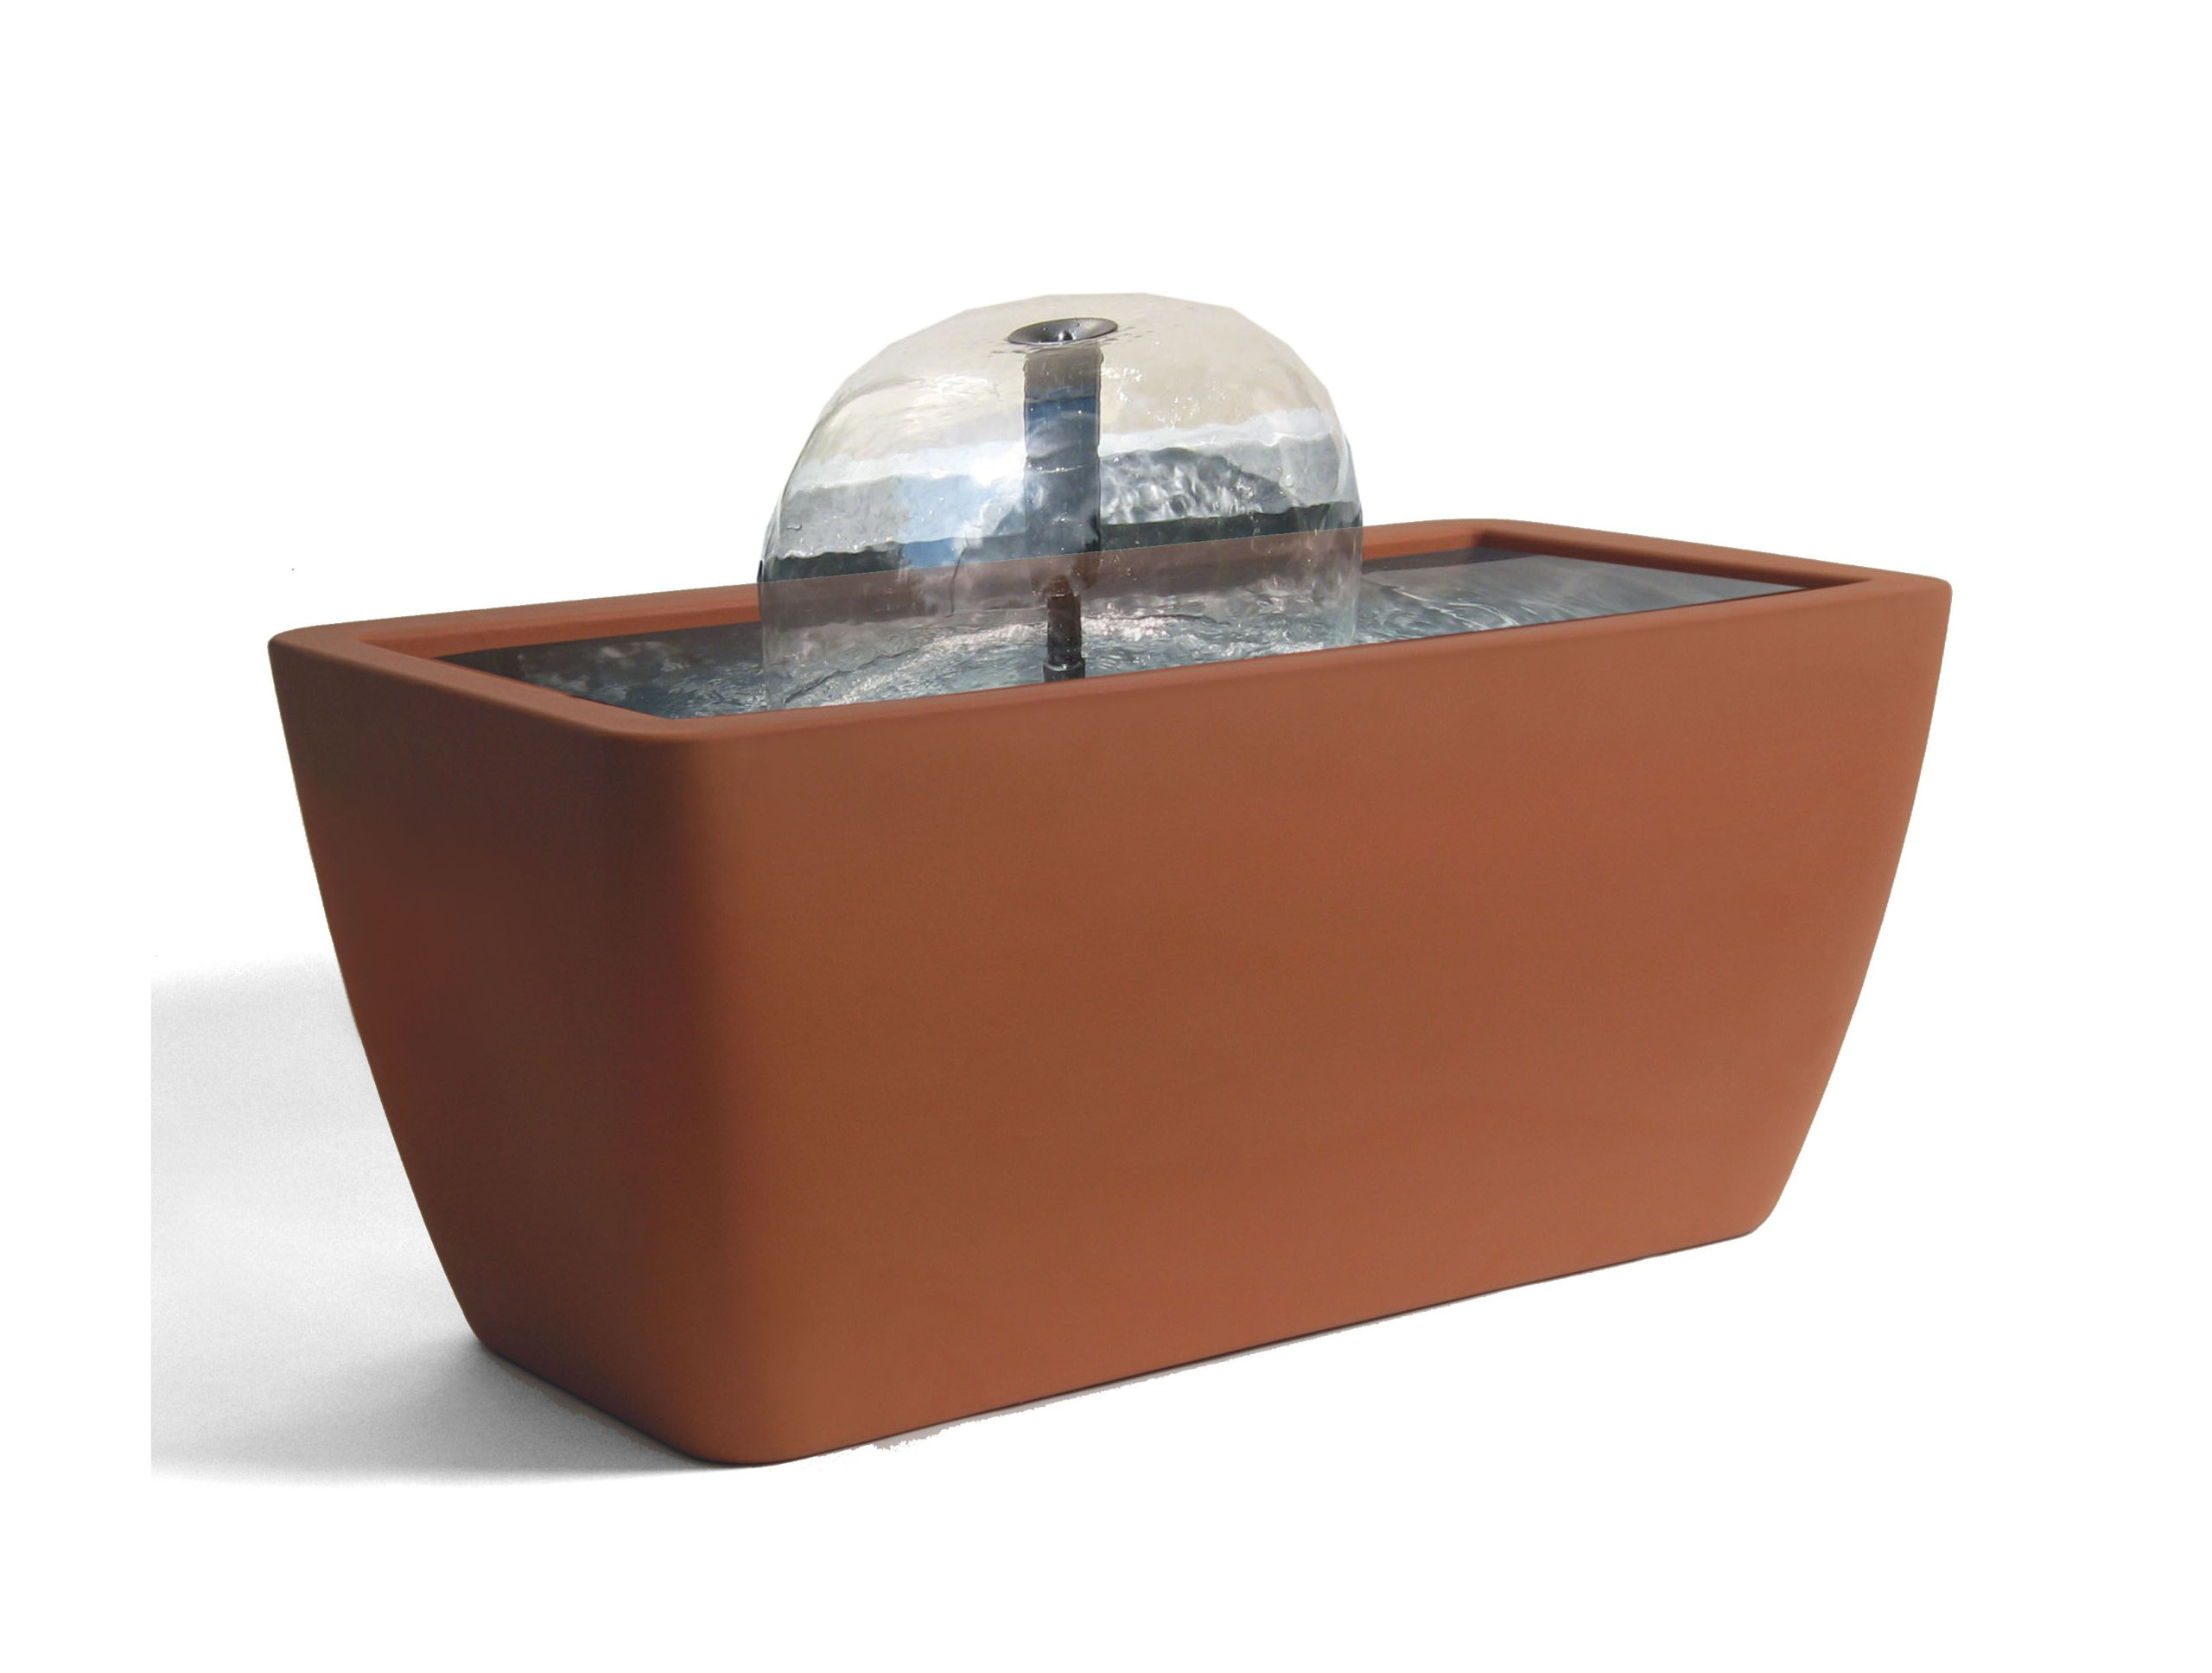 Algreen Manhattan Contemporary Terra Cotta Water Feature and Pond, 50-Gallon by Algreen